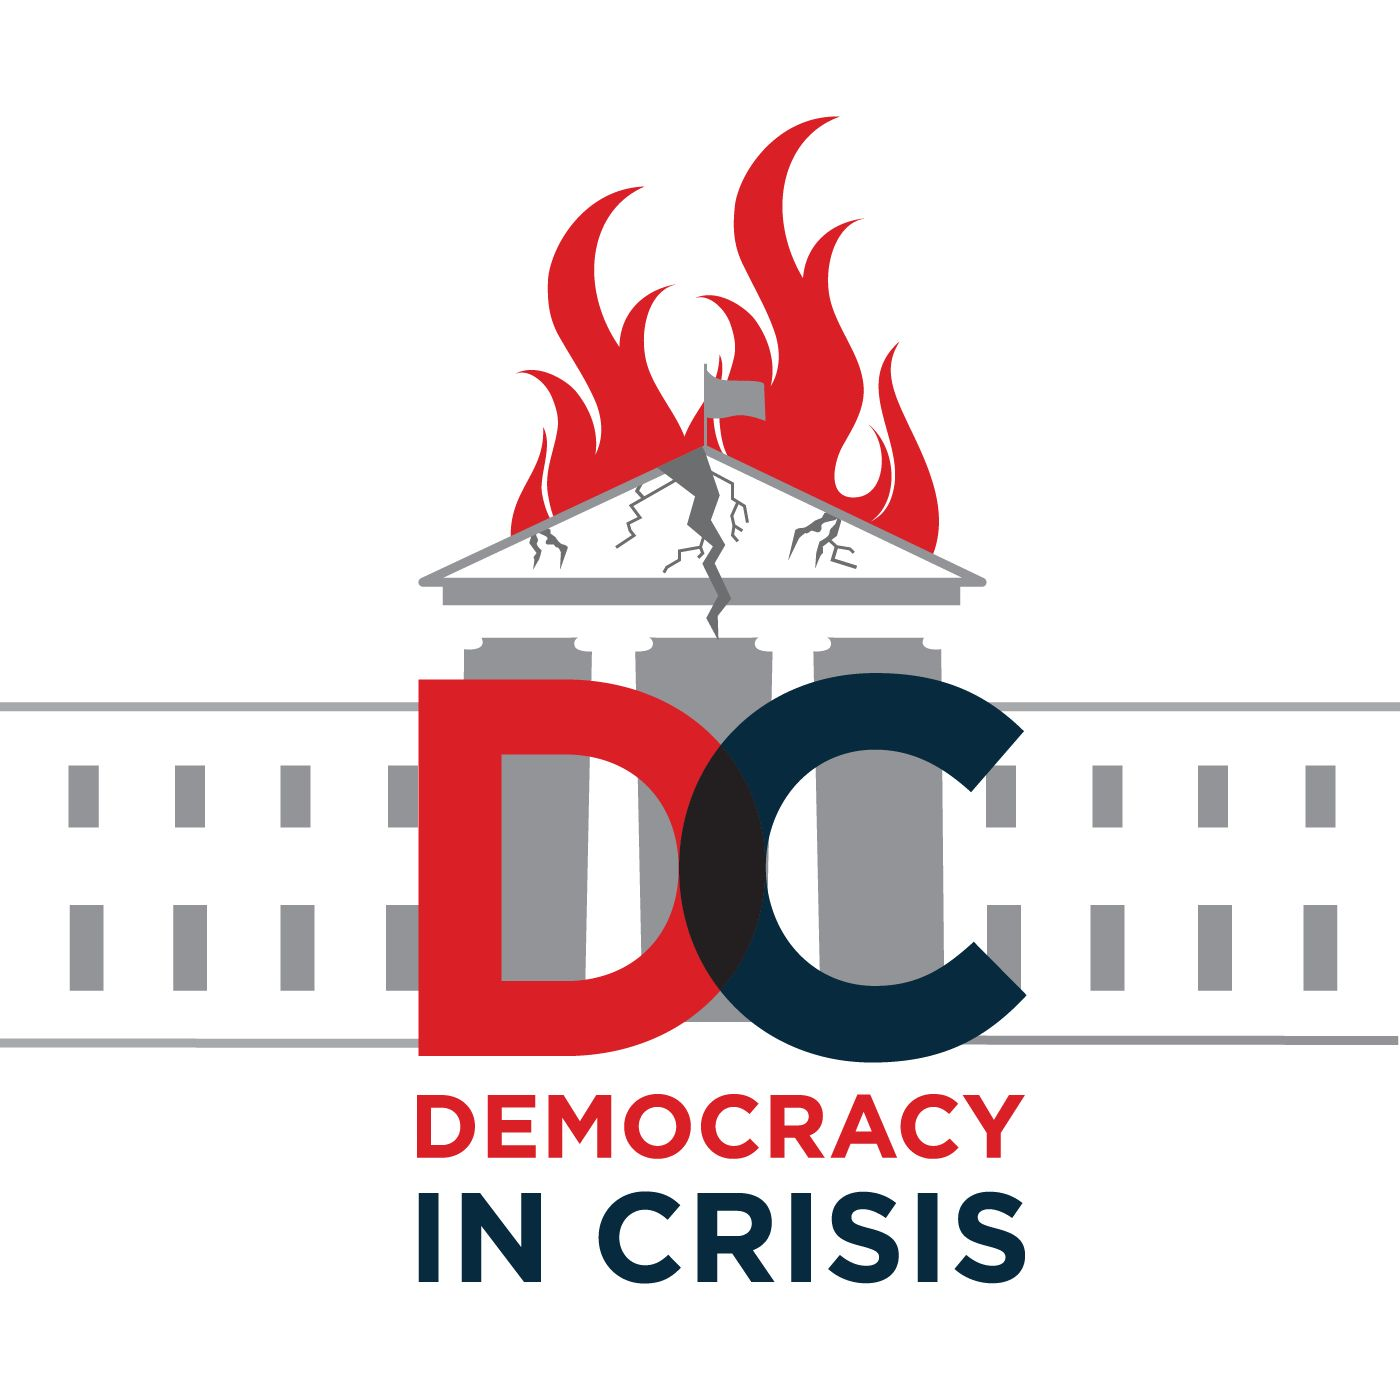 crisis in democracy Democracy is under assault and in retreat around the globe, a crisis that has intensified as america's democratic standards erode at an accelerating pace, according to freedom in the world 2018.